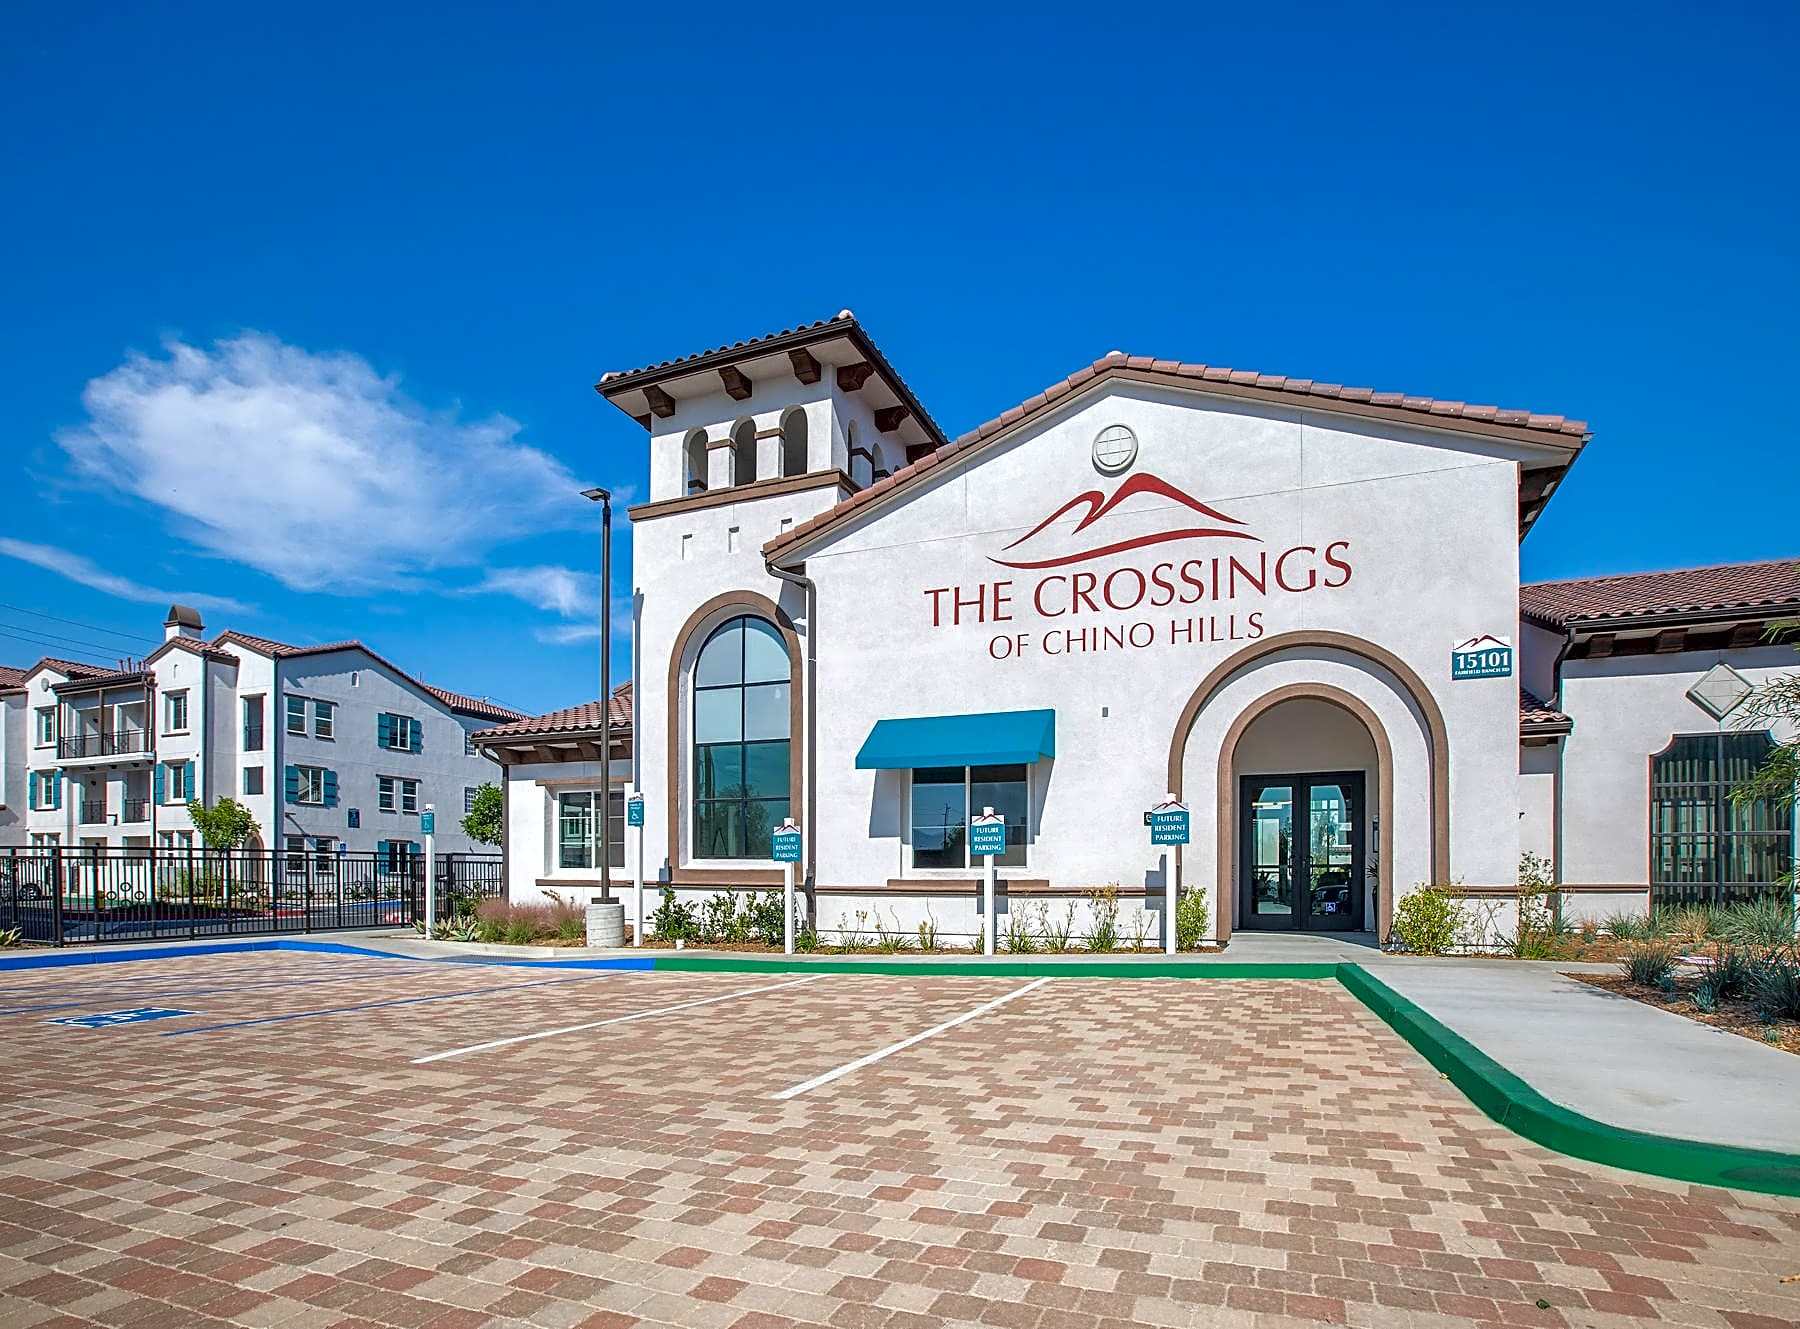 The Crossings of Chino Hills